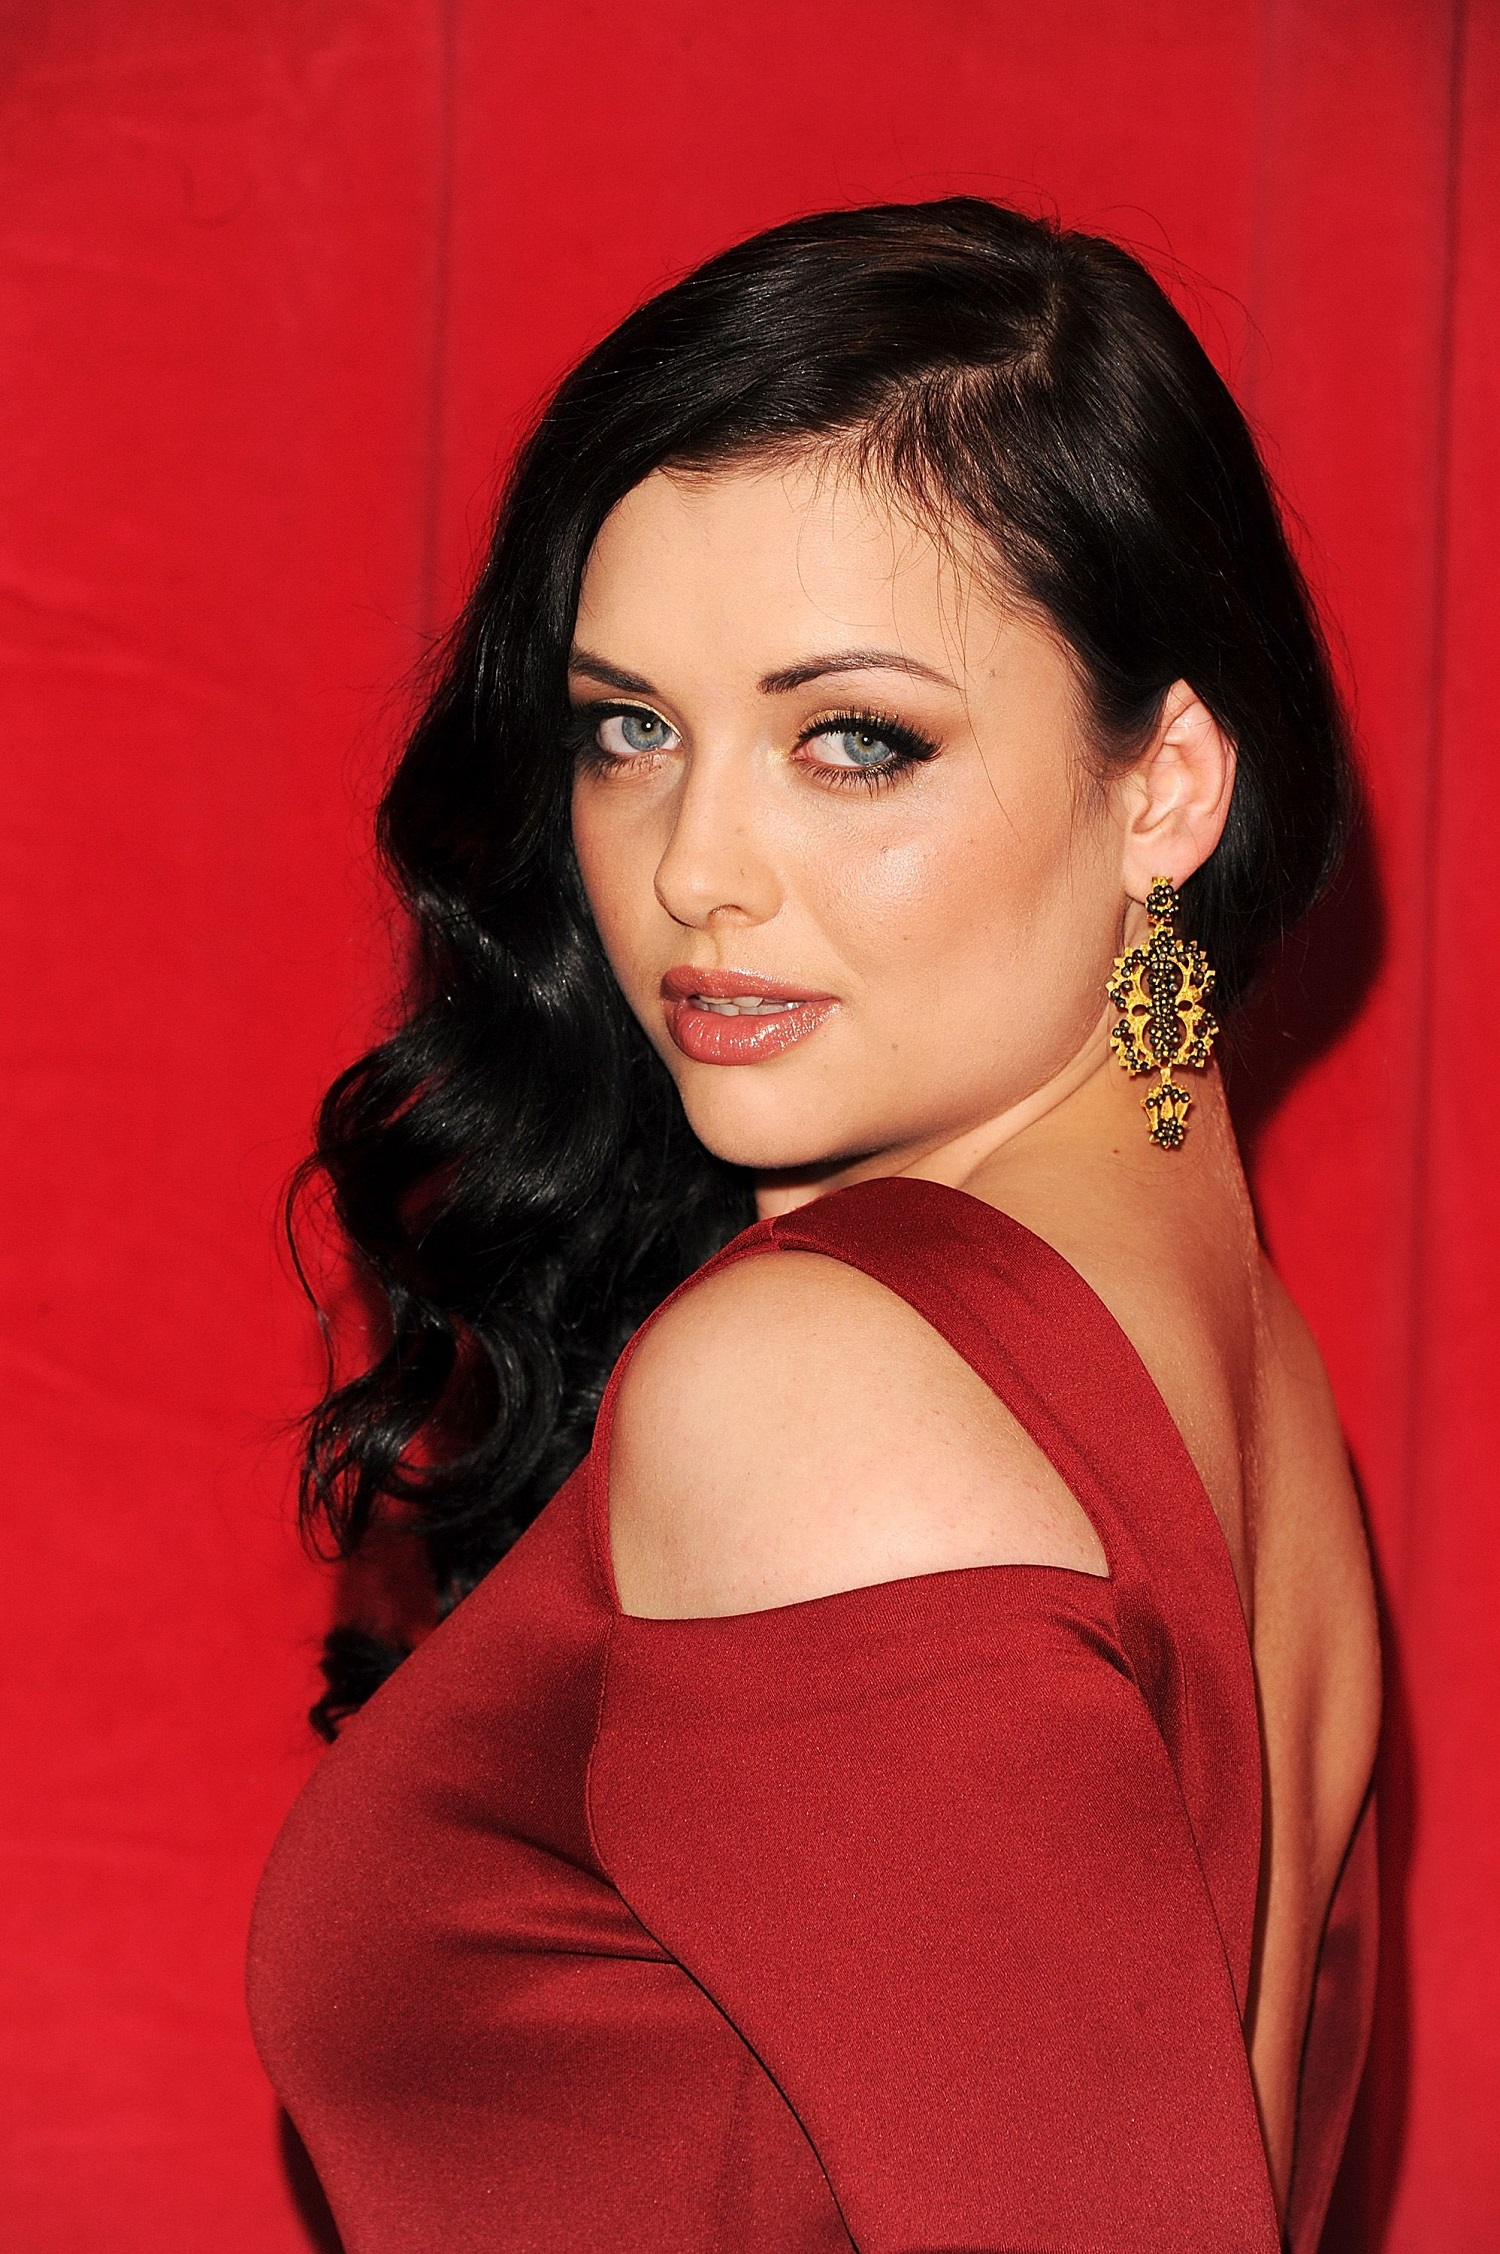 Shona McGarty 8 SAWFIRST Hot Celebrity Pictures